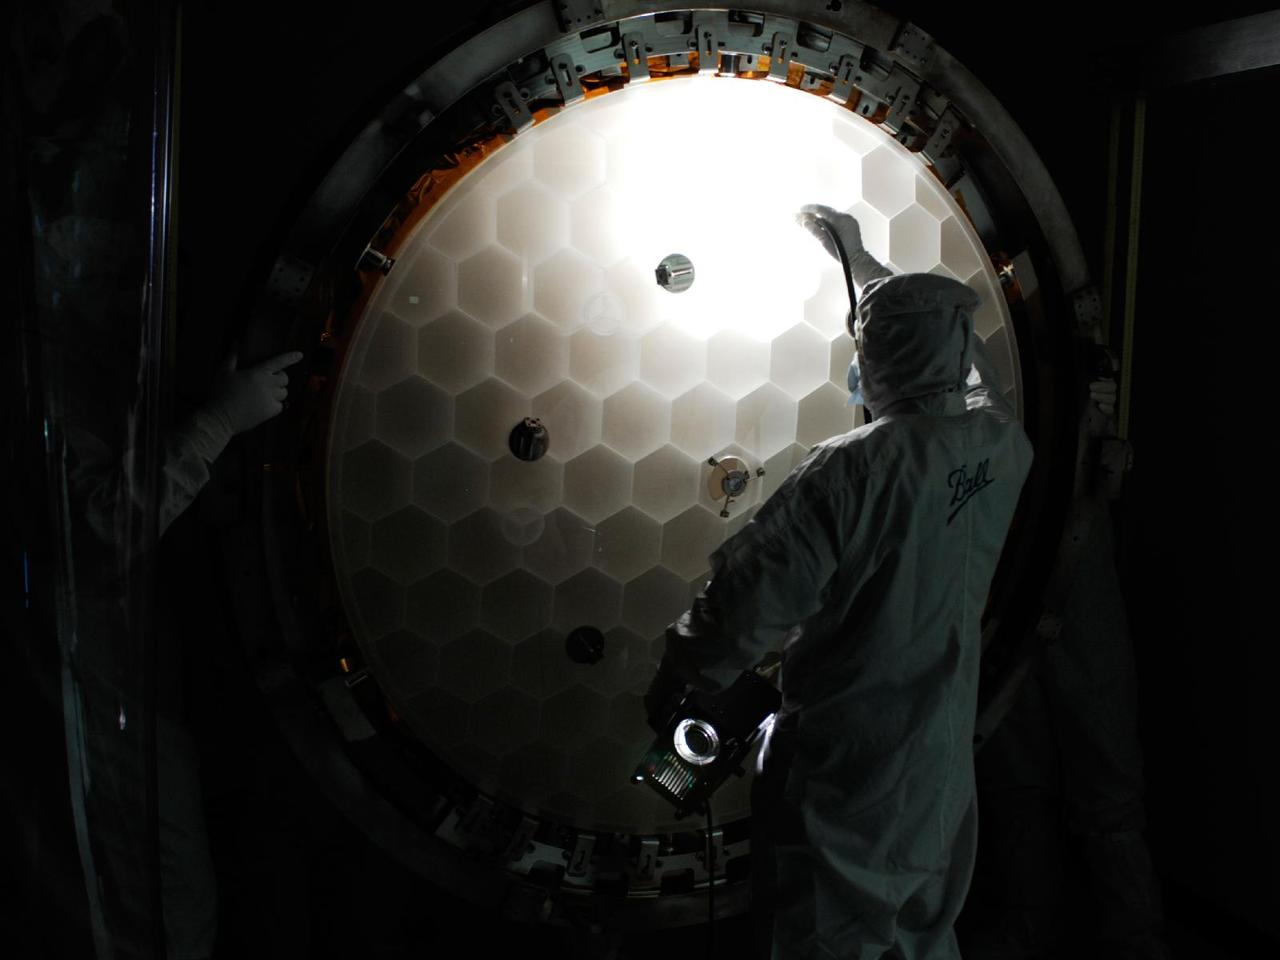 The Kepler primary mirror features a lightweight honeycomb structure (Photo: NASA and Ball Aerospace)